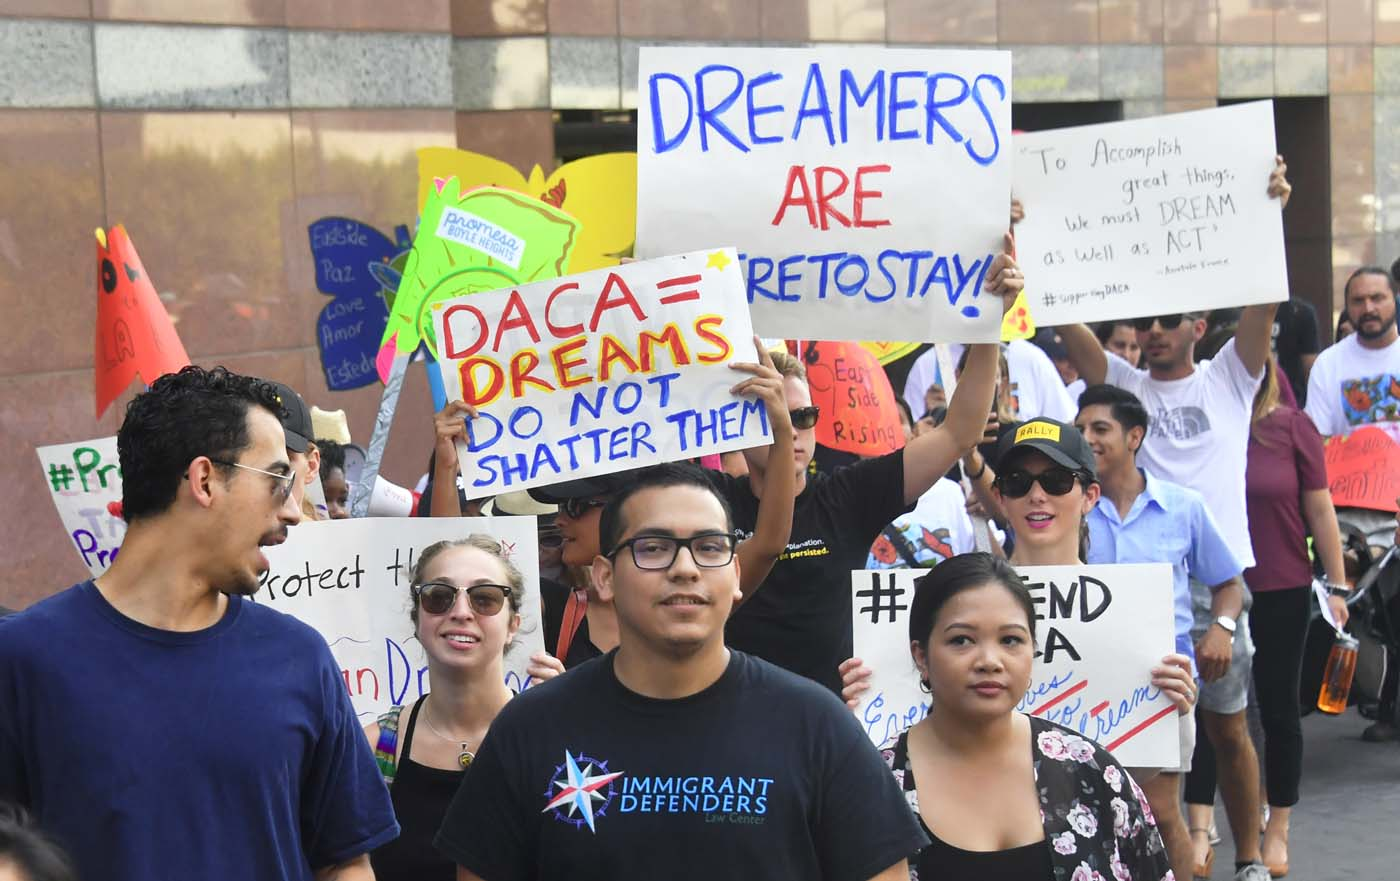 Young immigrants and supporters walk holding signs during a rally in support of Deferred Action for Childhood Arrivals (DACA) in Los Angeles, California on September 1, 2017. A decision is expected in coming days on whether US President Trump will end the program by his predecessor, former President Obama, on DACA which has protected some 800,000 undocumented immigrants, also known as Dreamers, since 2012. / AFP PHOTO / FREDERIC J. BROWN